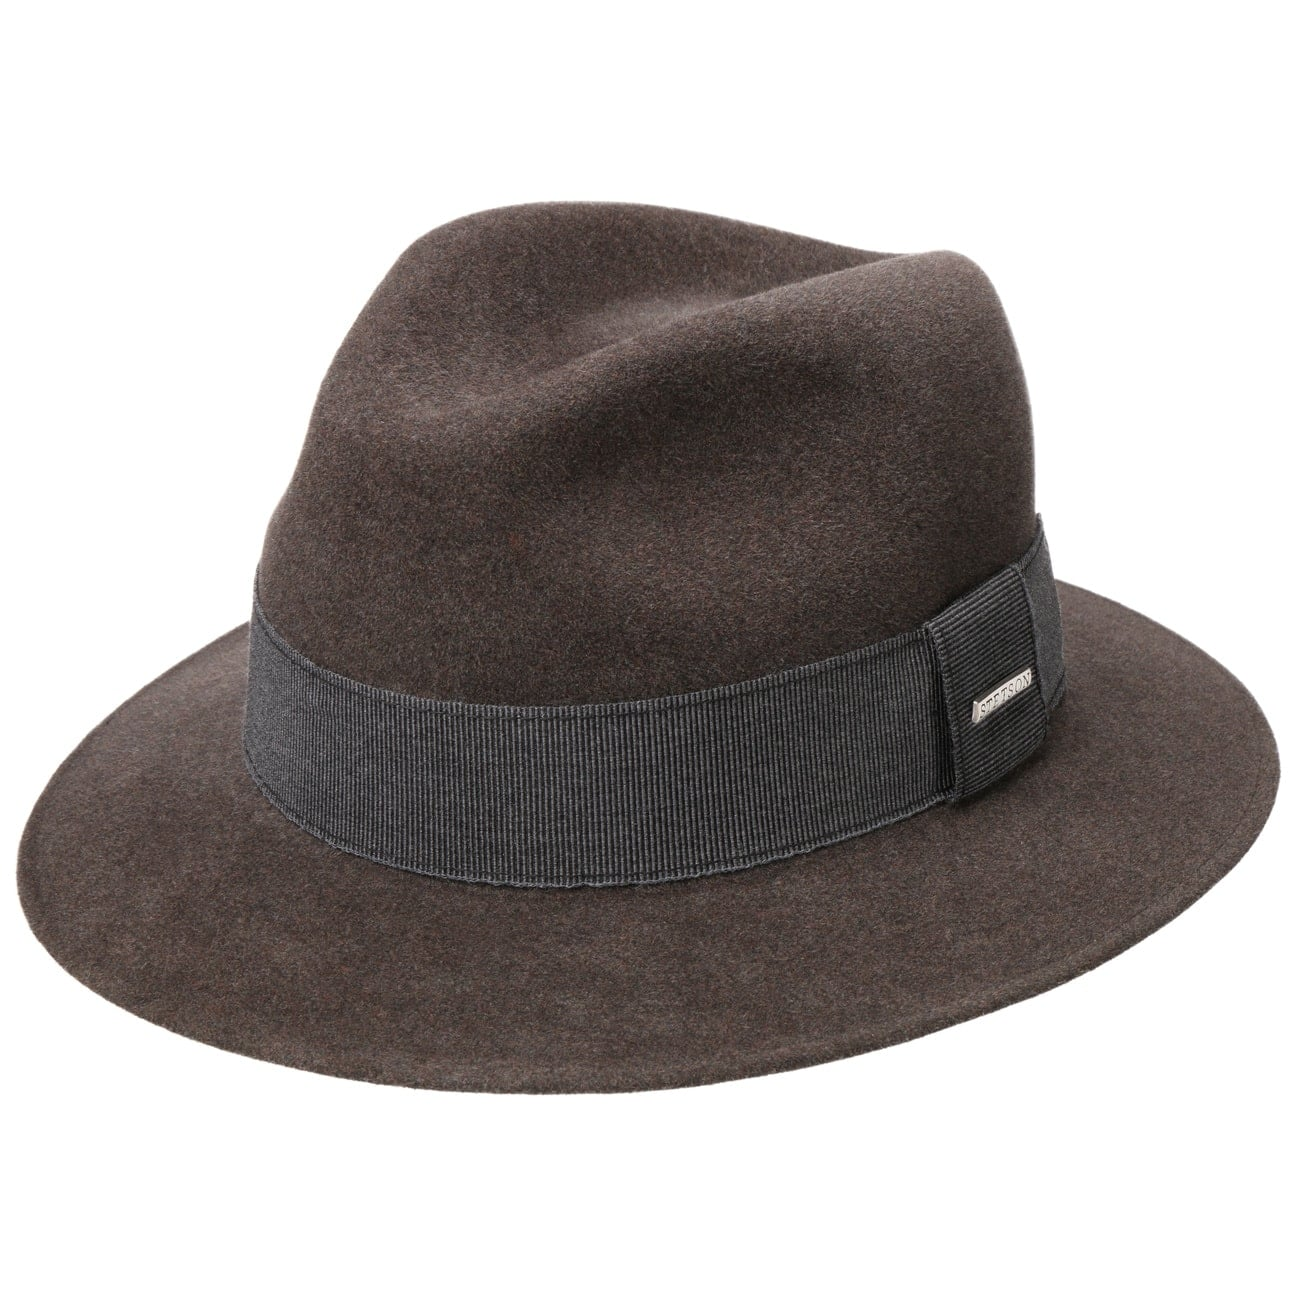 Hats and Caps at Village Hats. Village Hats is the UK's number one source for Men's hats, Women's hats, Flat Caps, Baseball Caps, Beanies, Fedora Hats, Trilby Hats, Sun Hats and Winter hats.